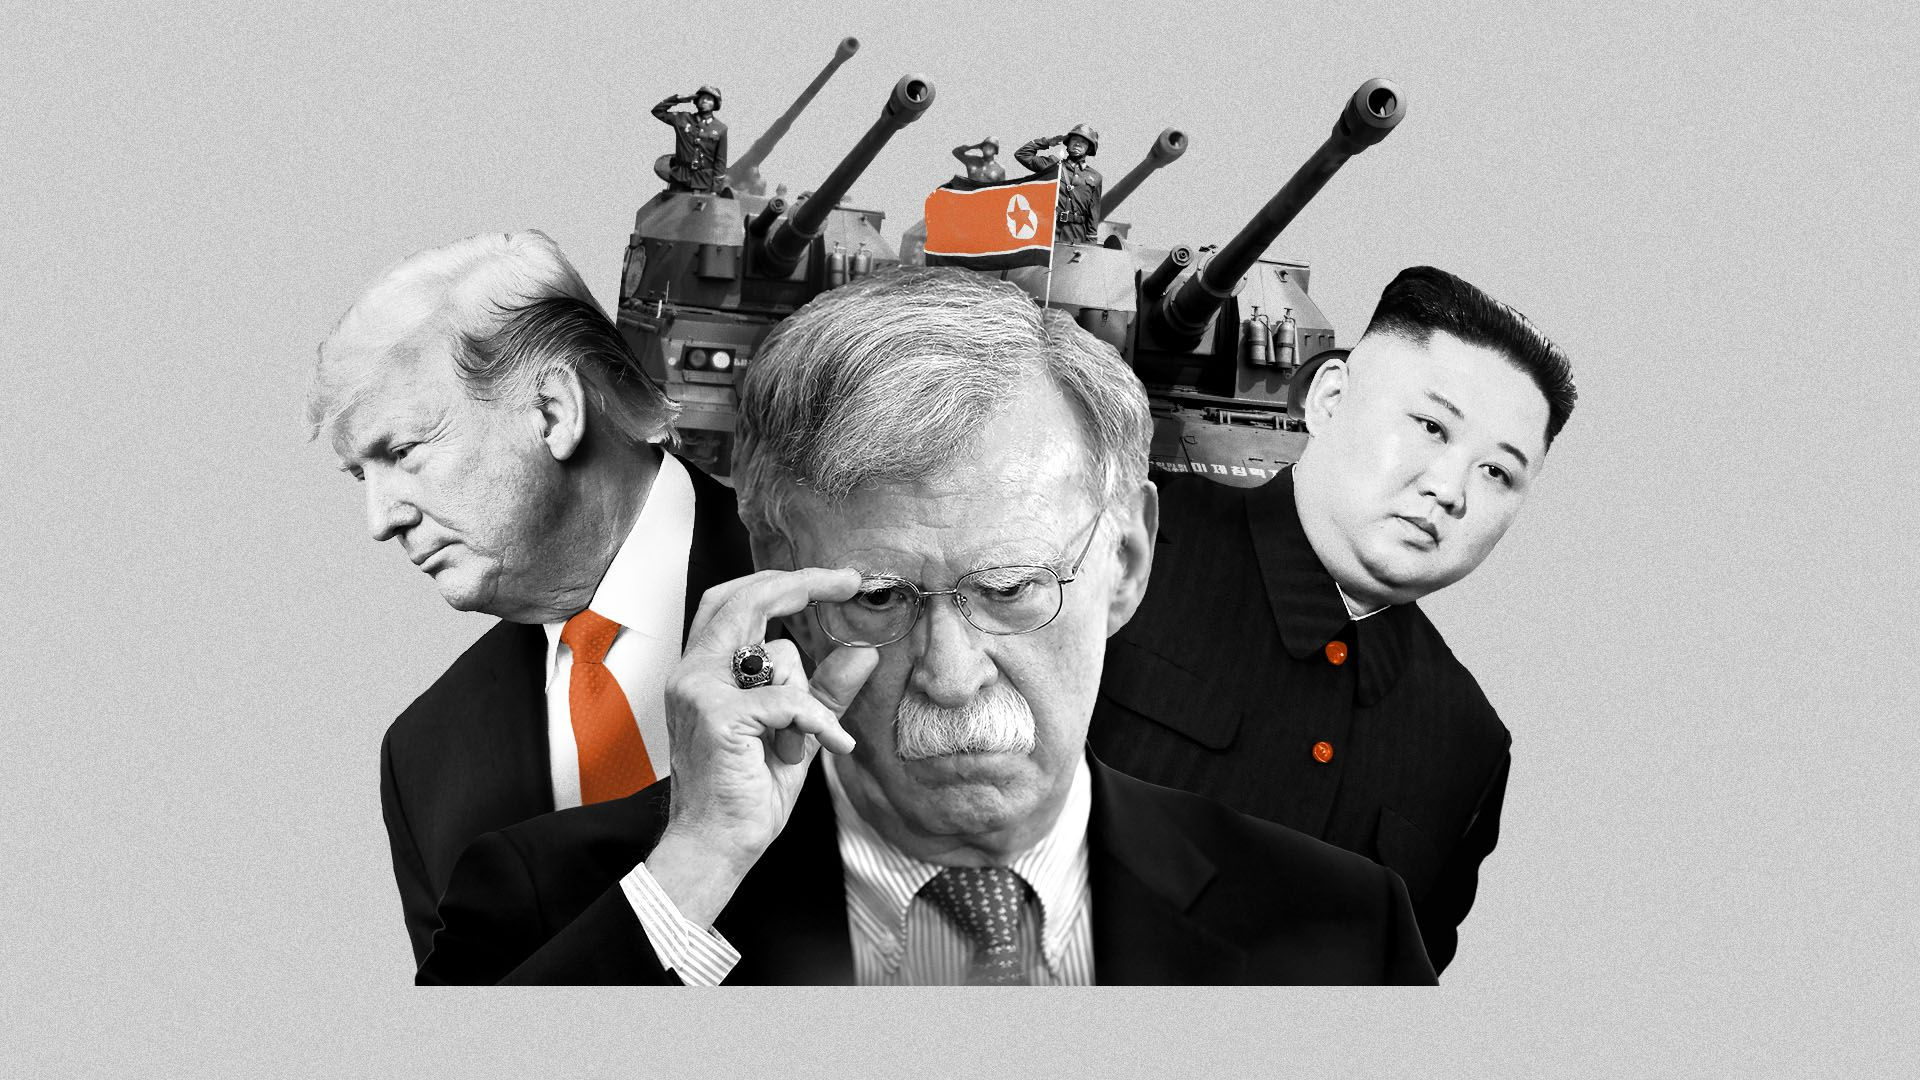 Photo illustration of John Bolton, President Trump, Kim Jong Un, and a collection of tanks from a North Korean military parade.